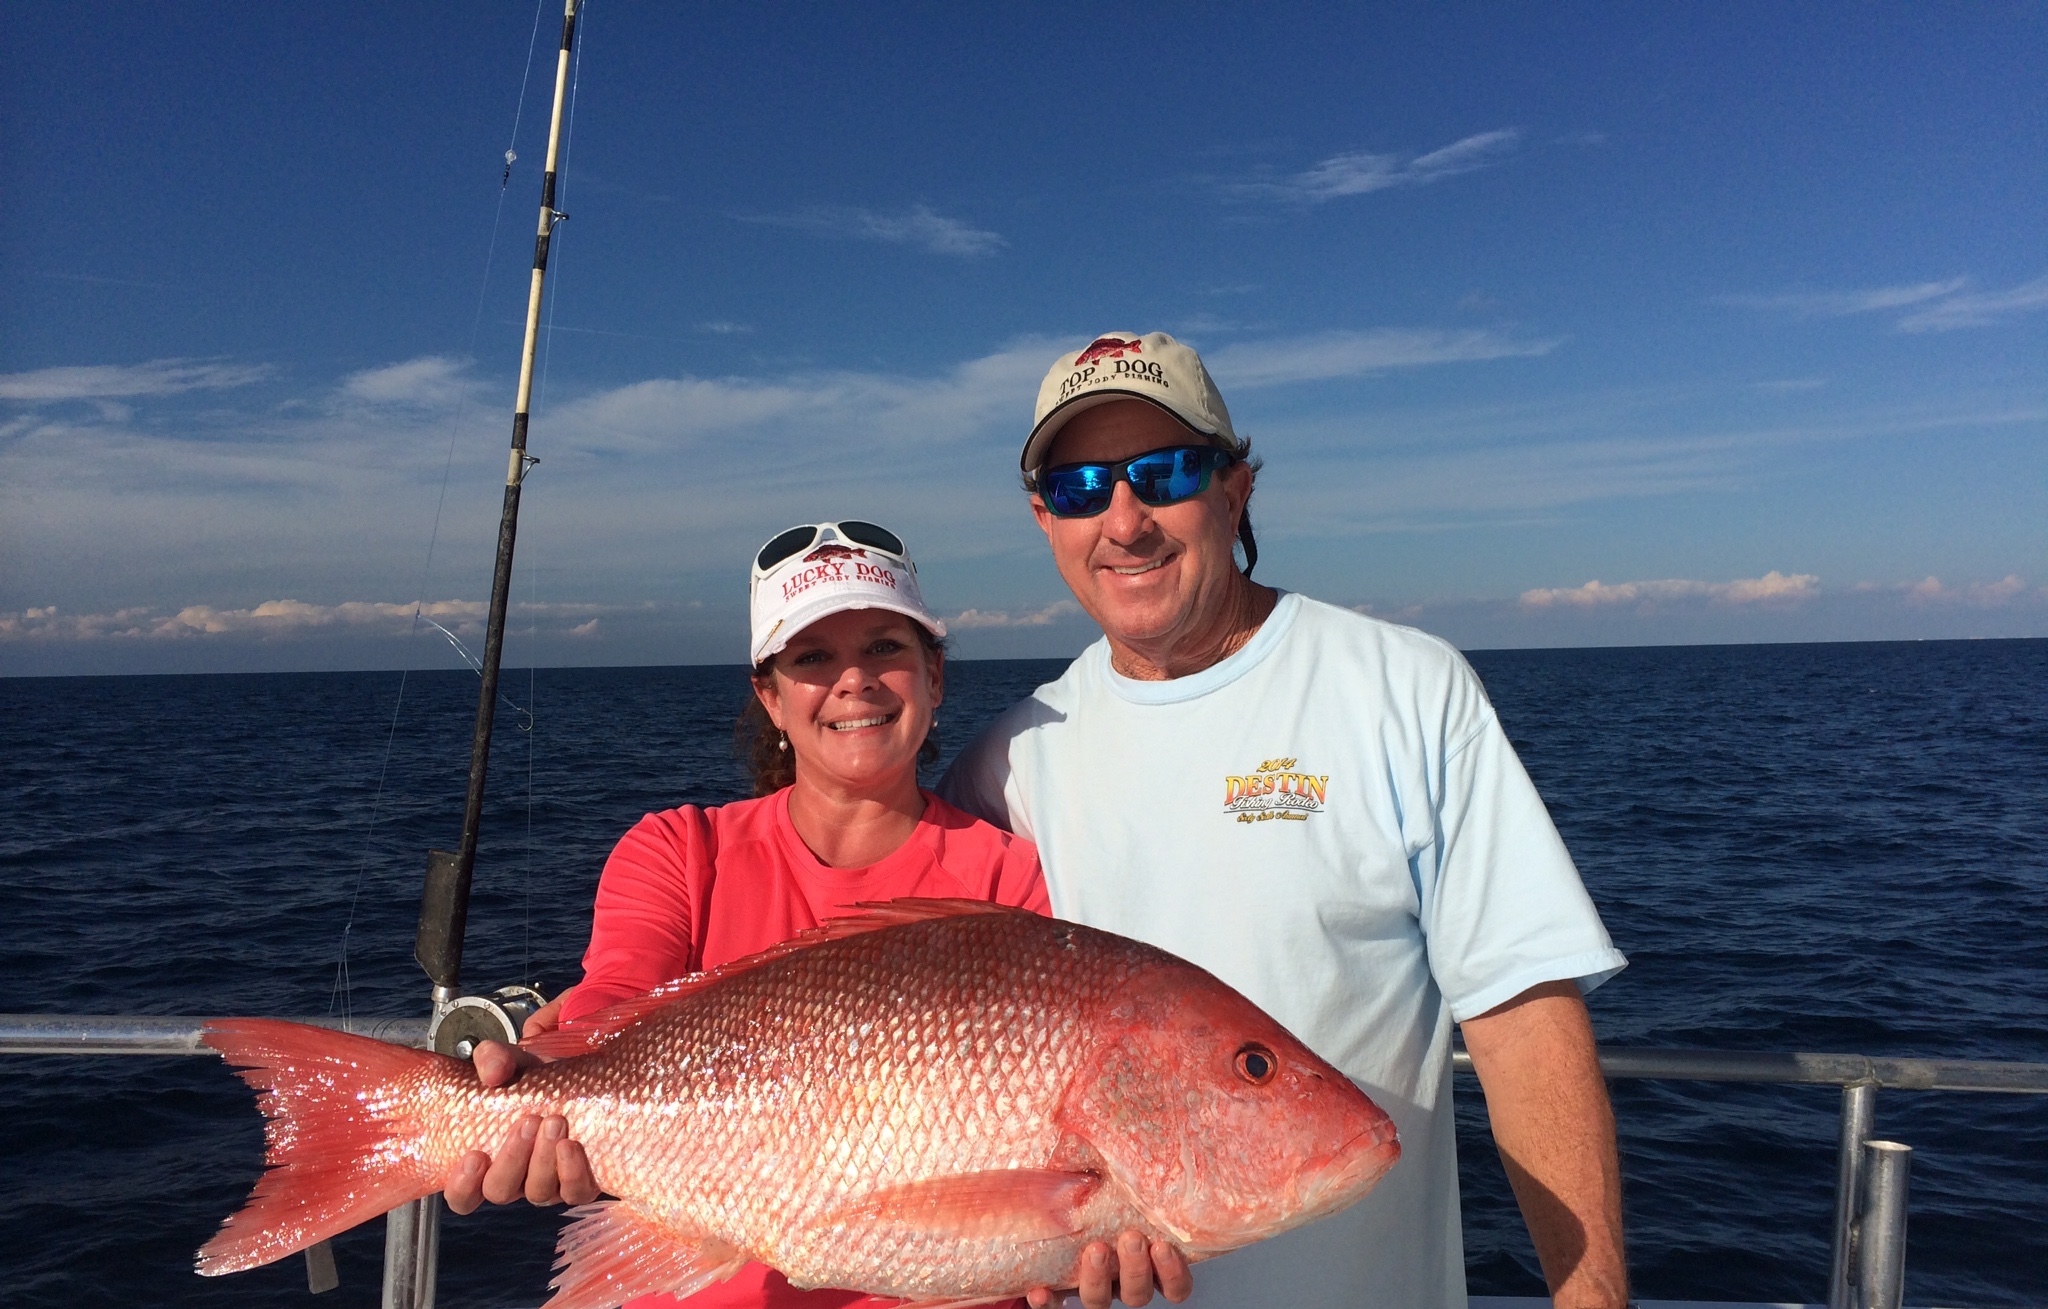 For current information updates calendars and photos for Sweet jody fishing